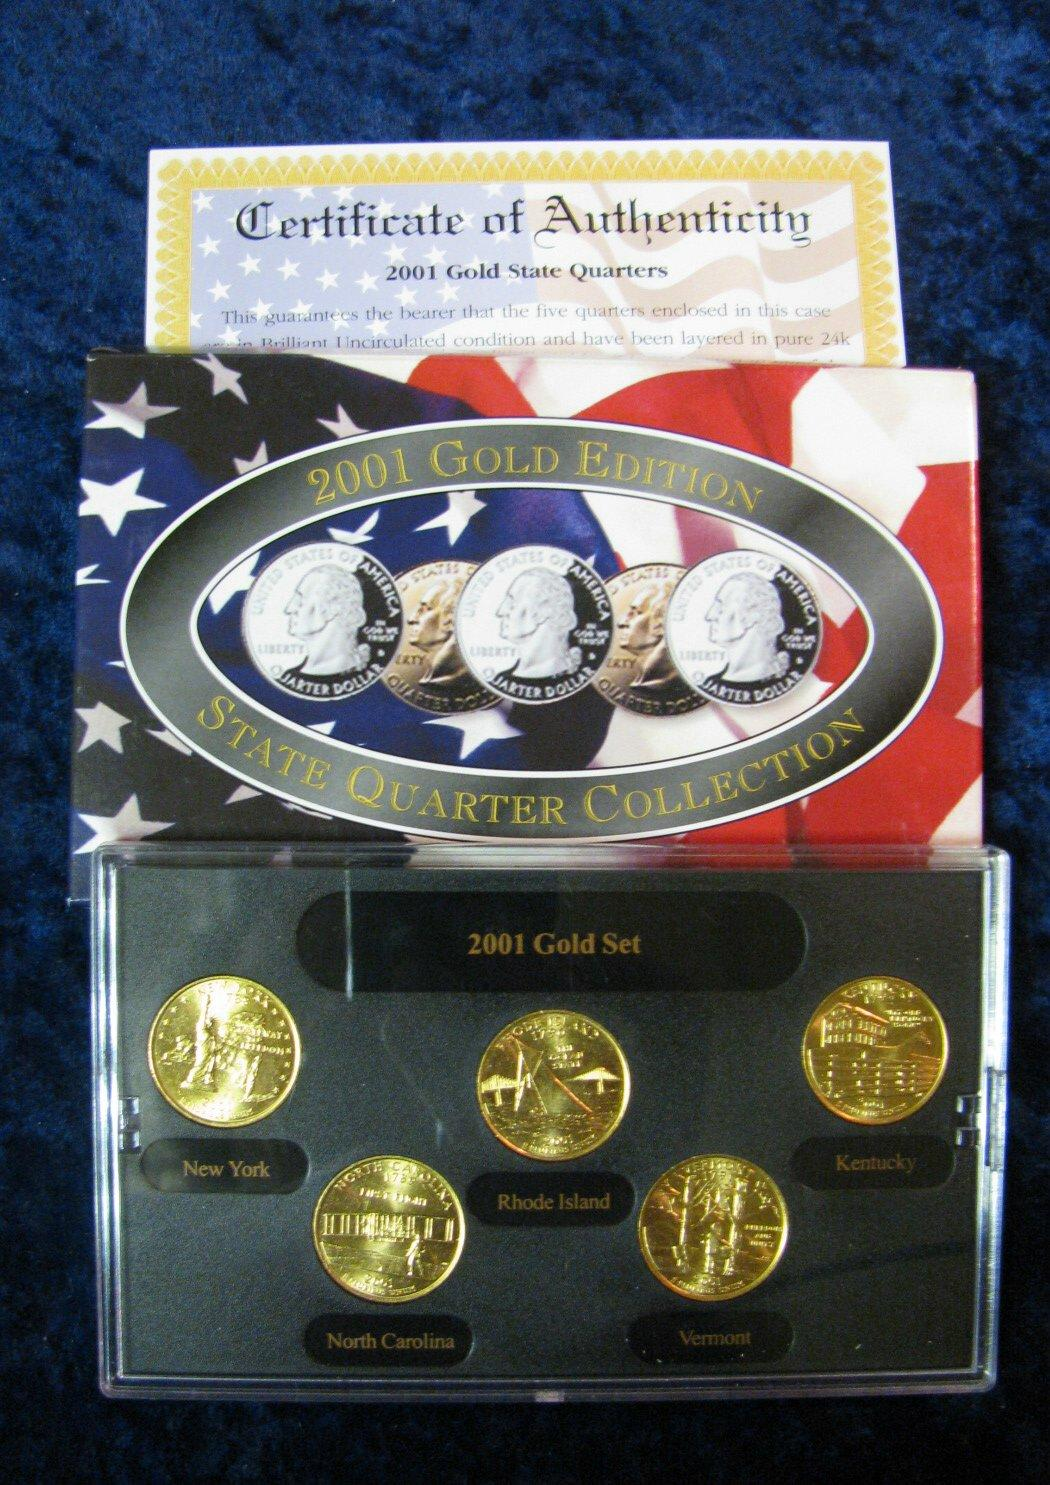 592. 2002 gold edition state quarter collection in original box.